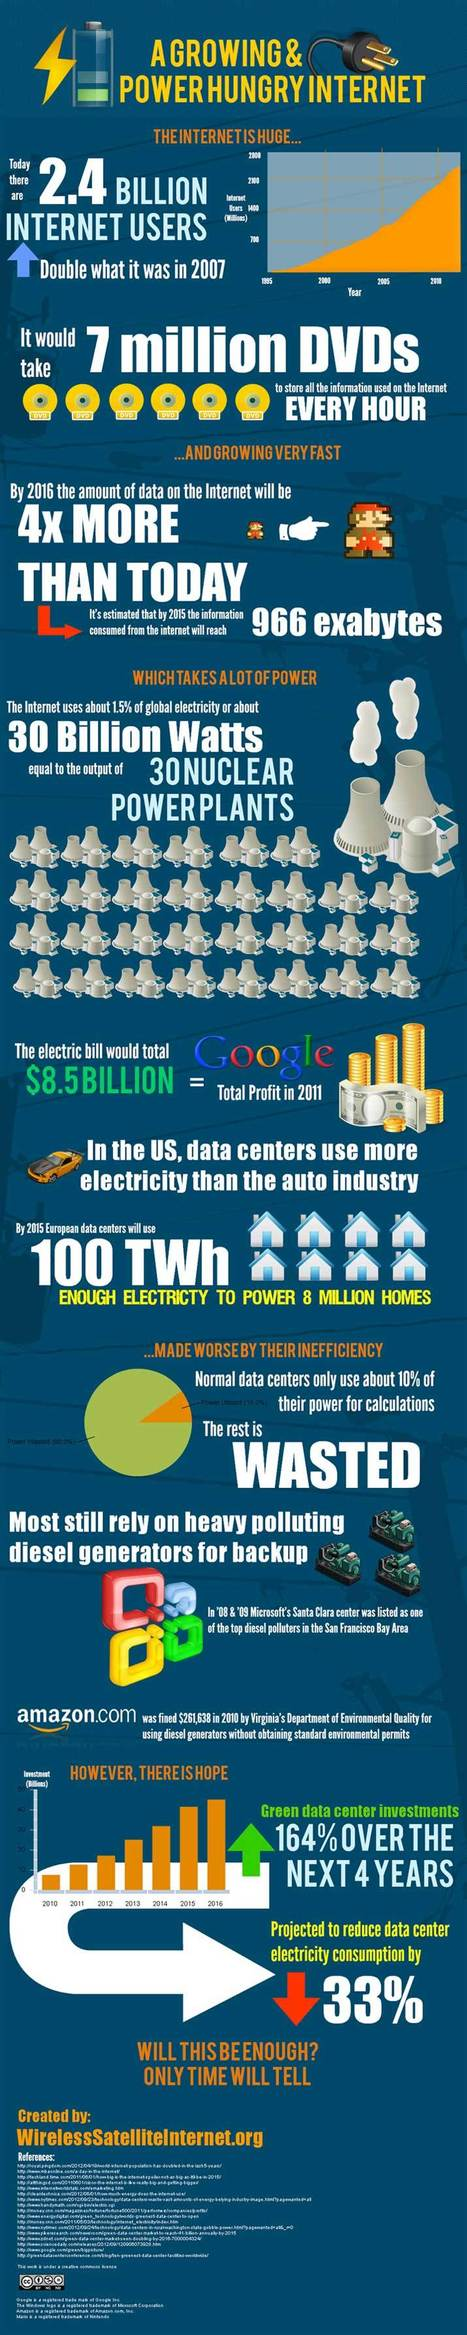 How Much Is the Internet's Electric Bill? [INFOGRAPHIC] | WEBOLUTION! | Scoop.it